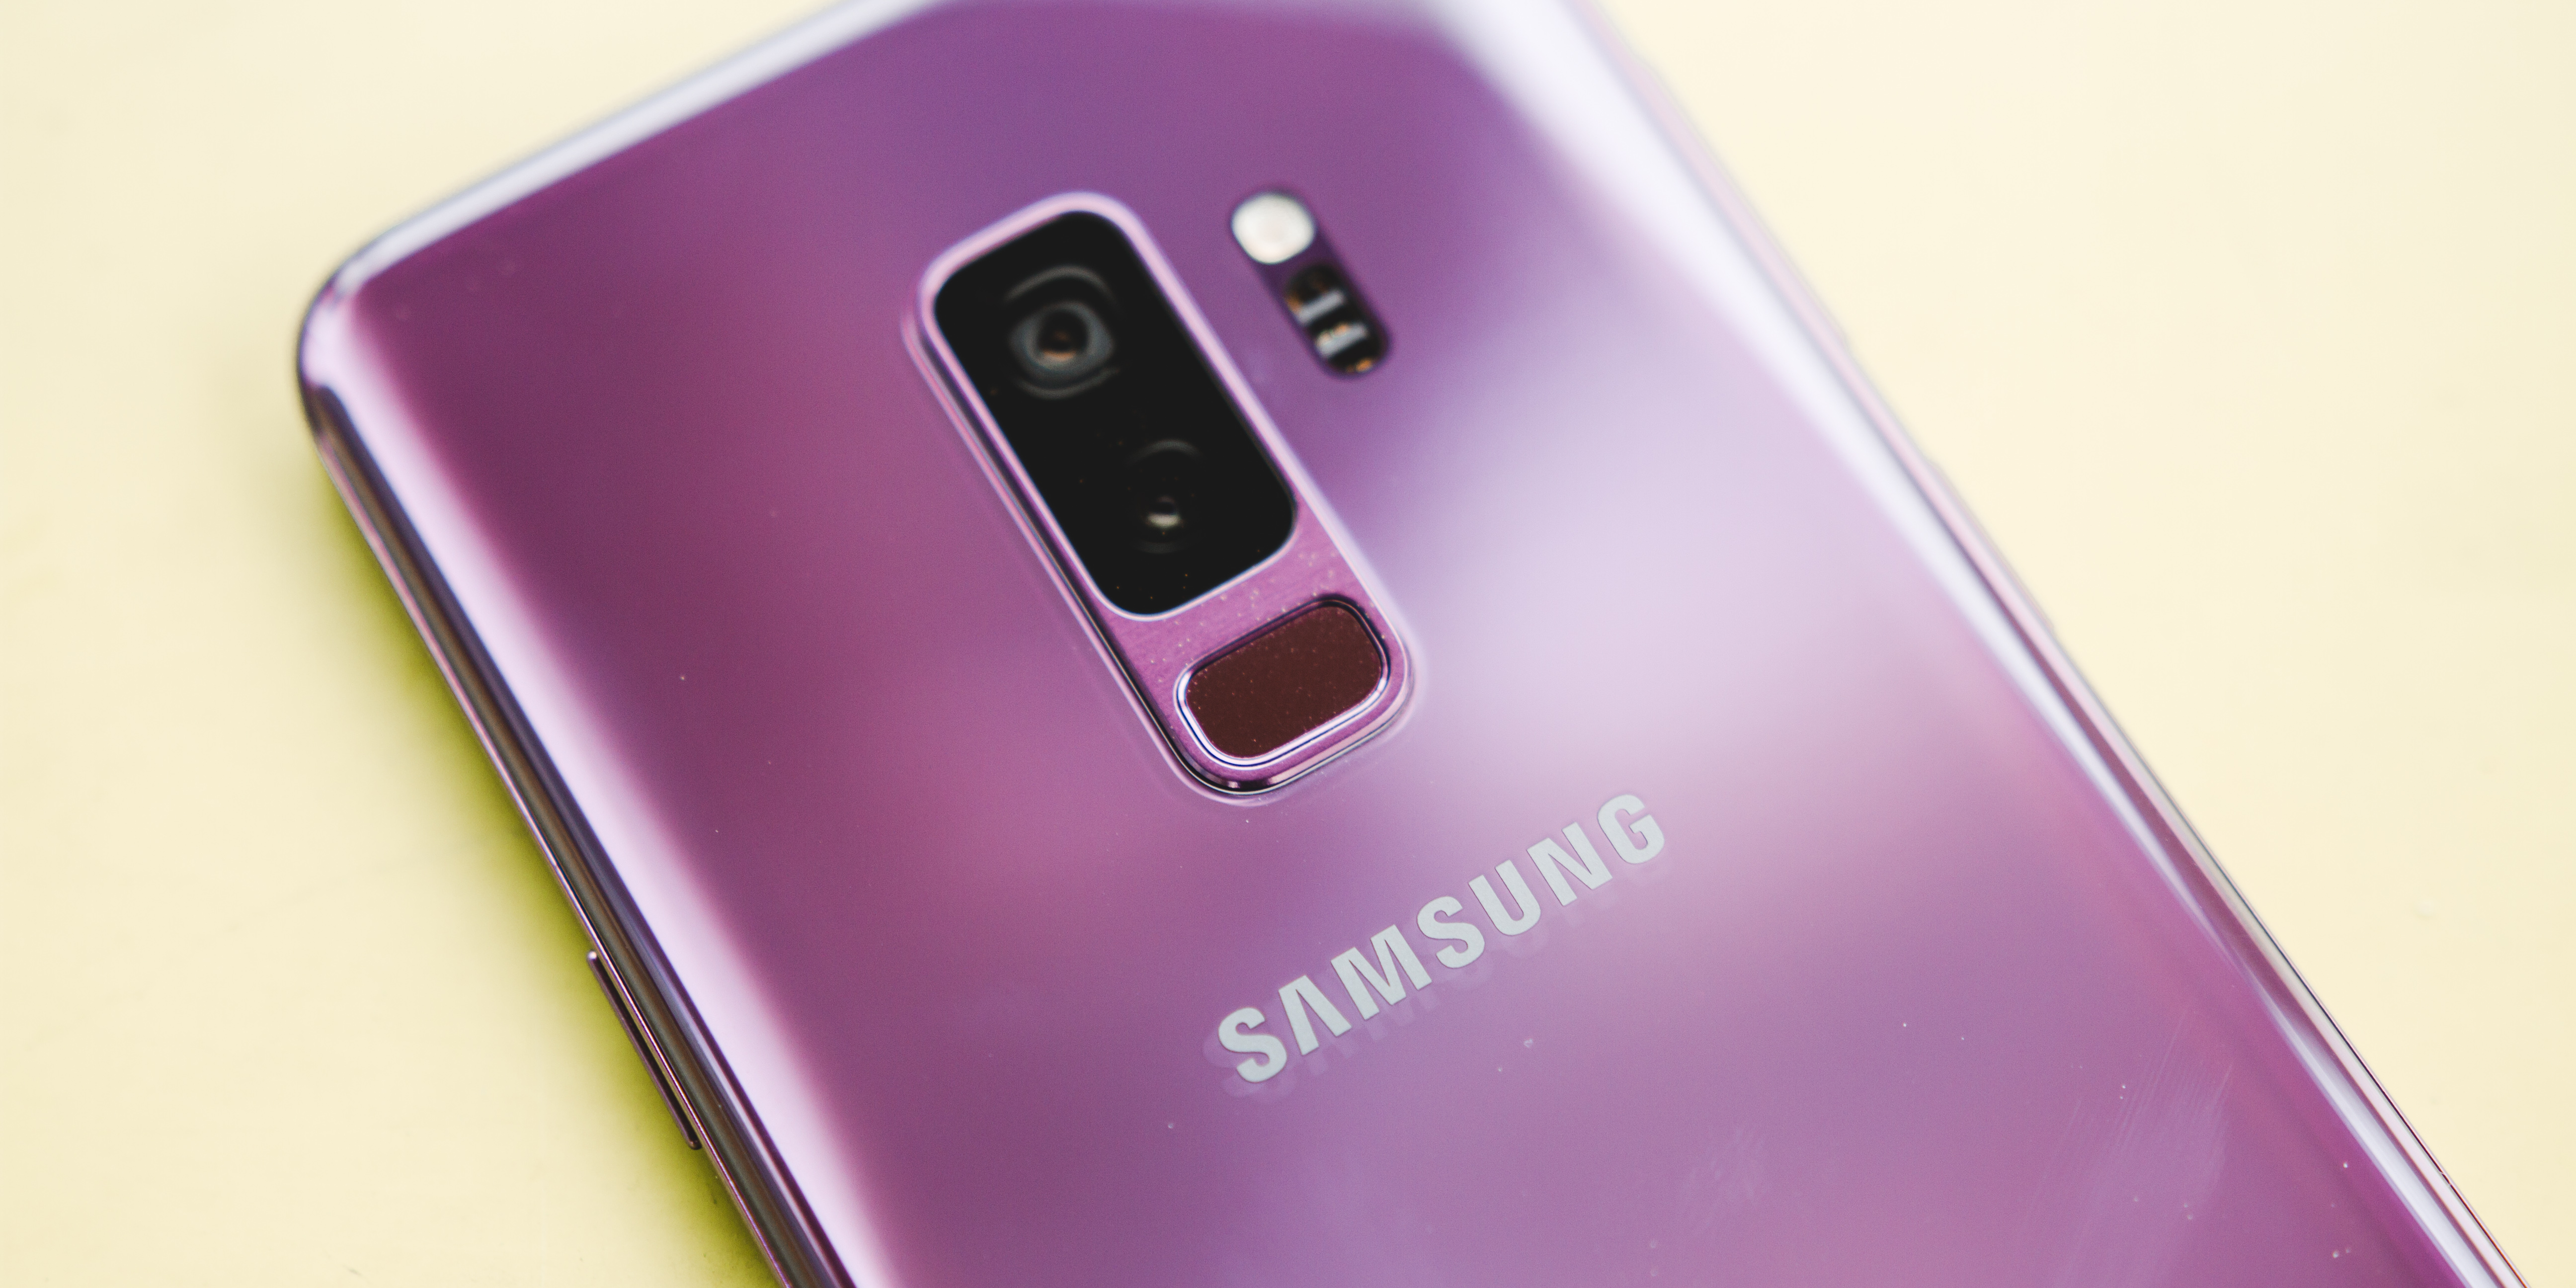 samsung galaxy s9 s9 pick up 480fps super slow motion video mode in july update